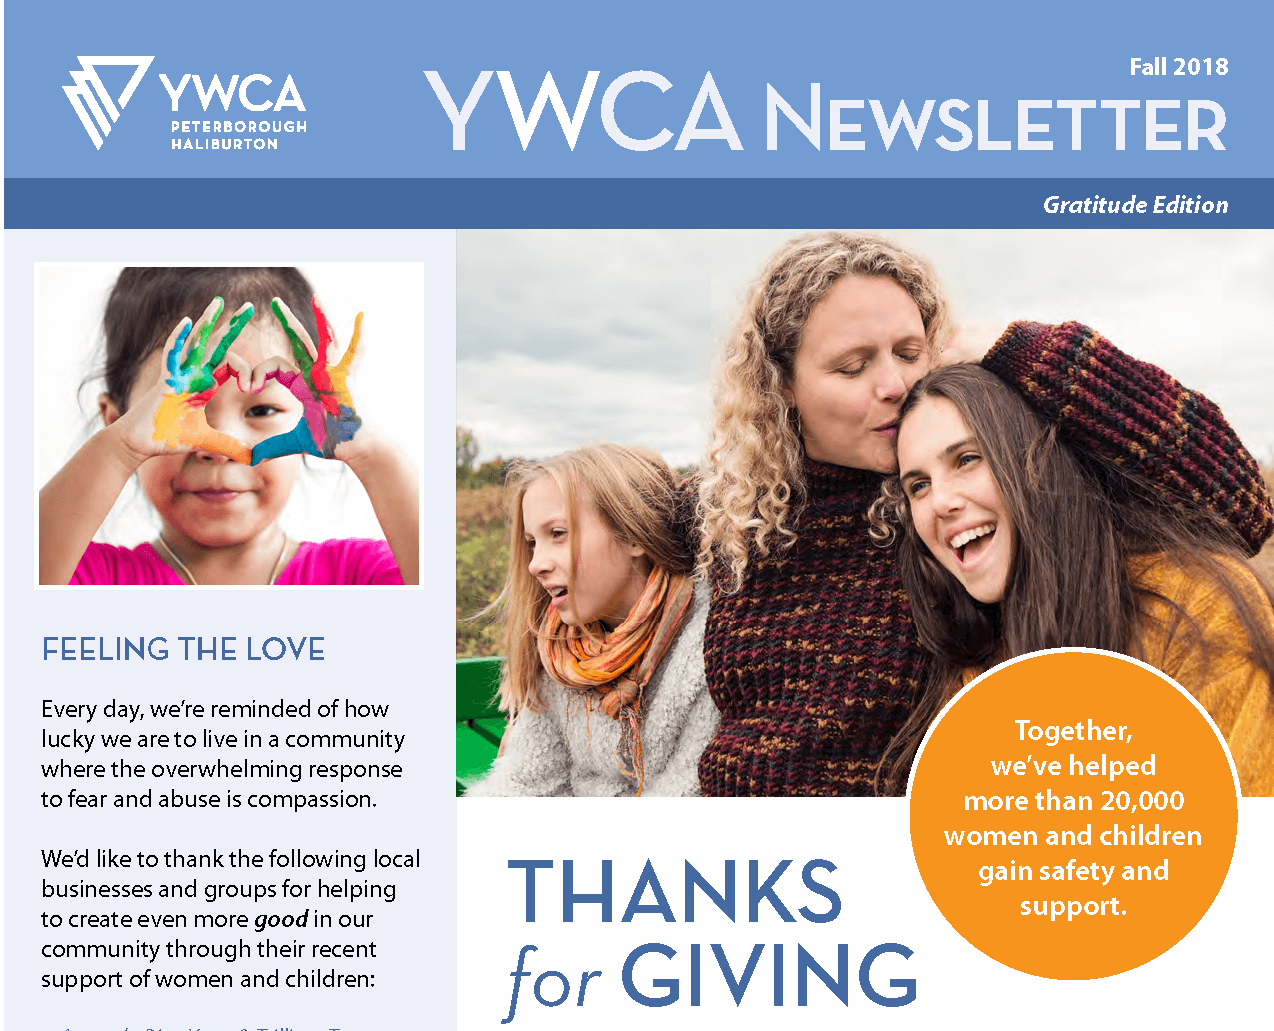 Image of Fall 2018 Newsletter cover